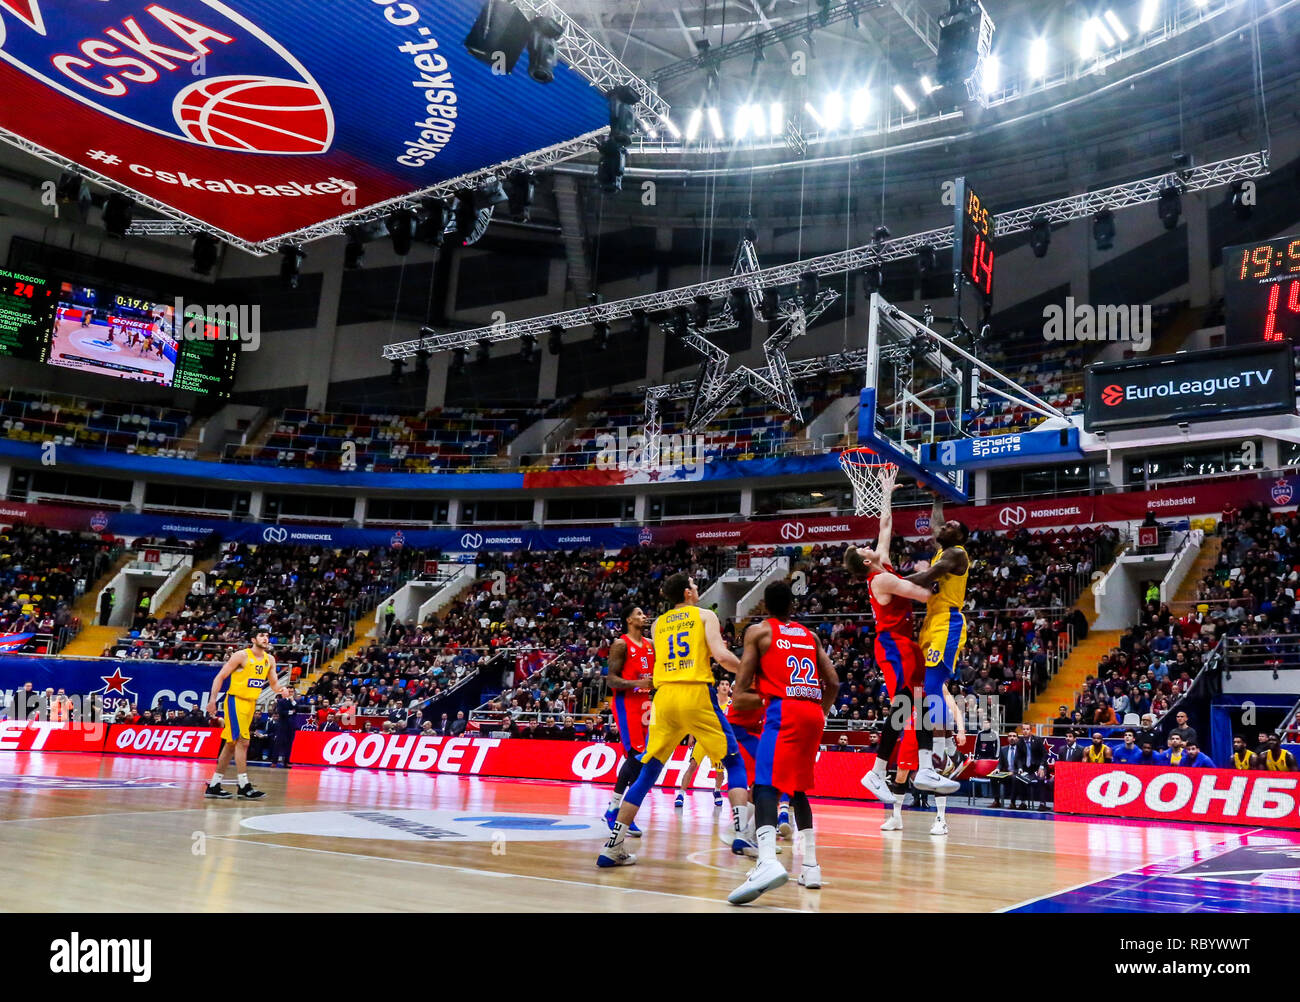 Tarik Black, #28 of Maccabi Tel Aviv, seen in action against CSKA Moscow in Round 18 of the Turkish Airlines Euroleague game of the 2018-2019 season. Maccabi Tel Aviv beat CSKA Moscow, 93-76. - Stock Image